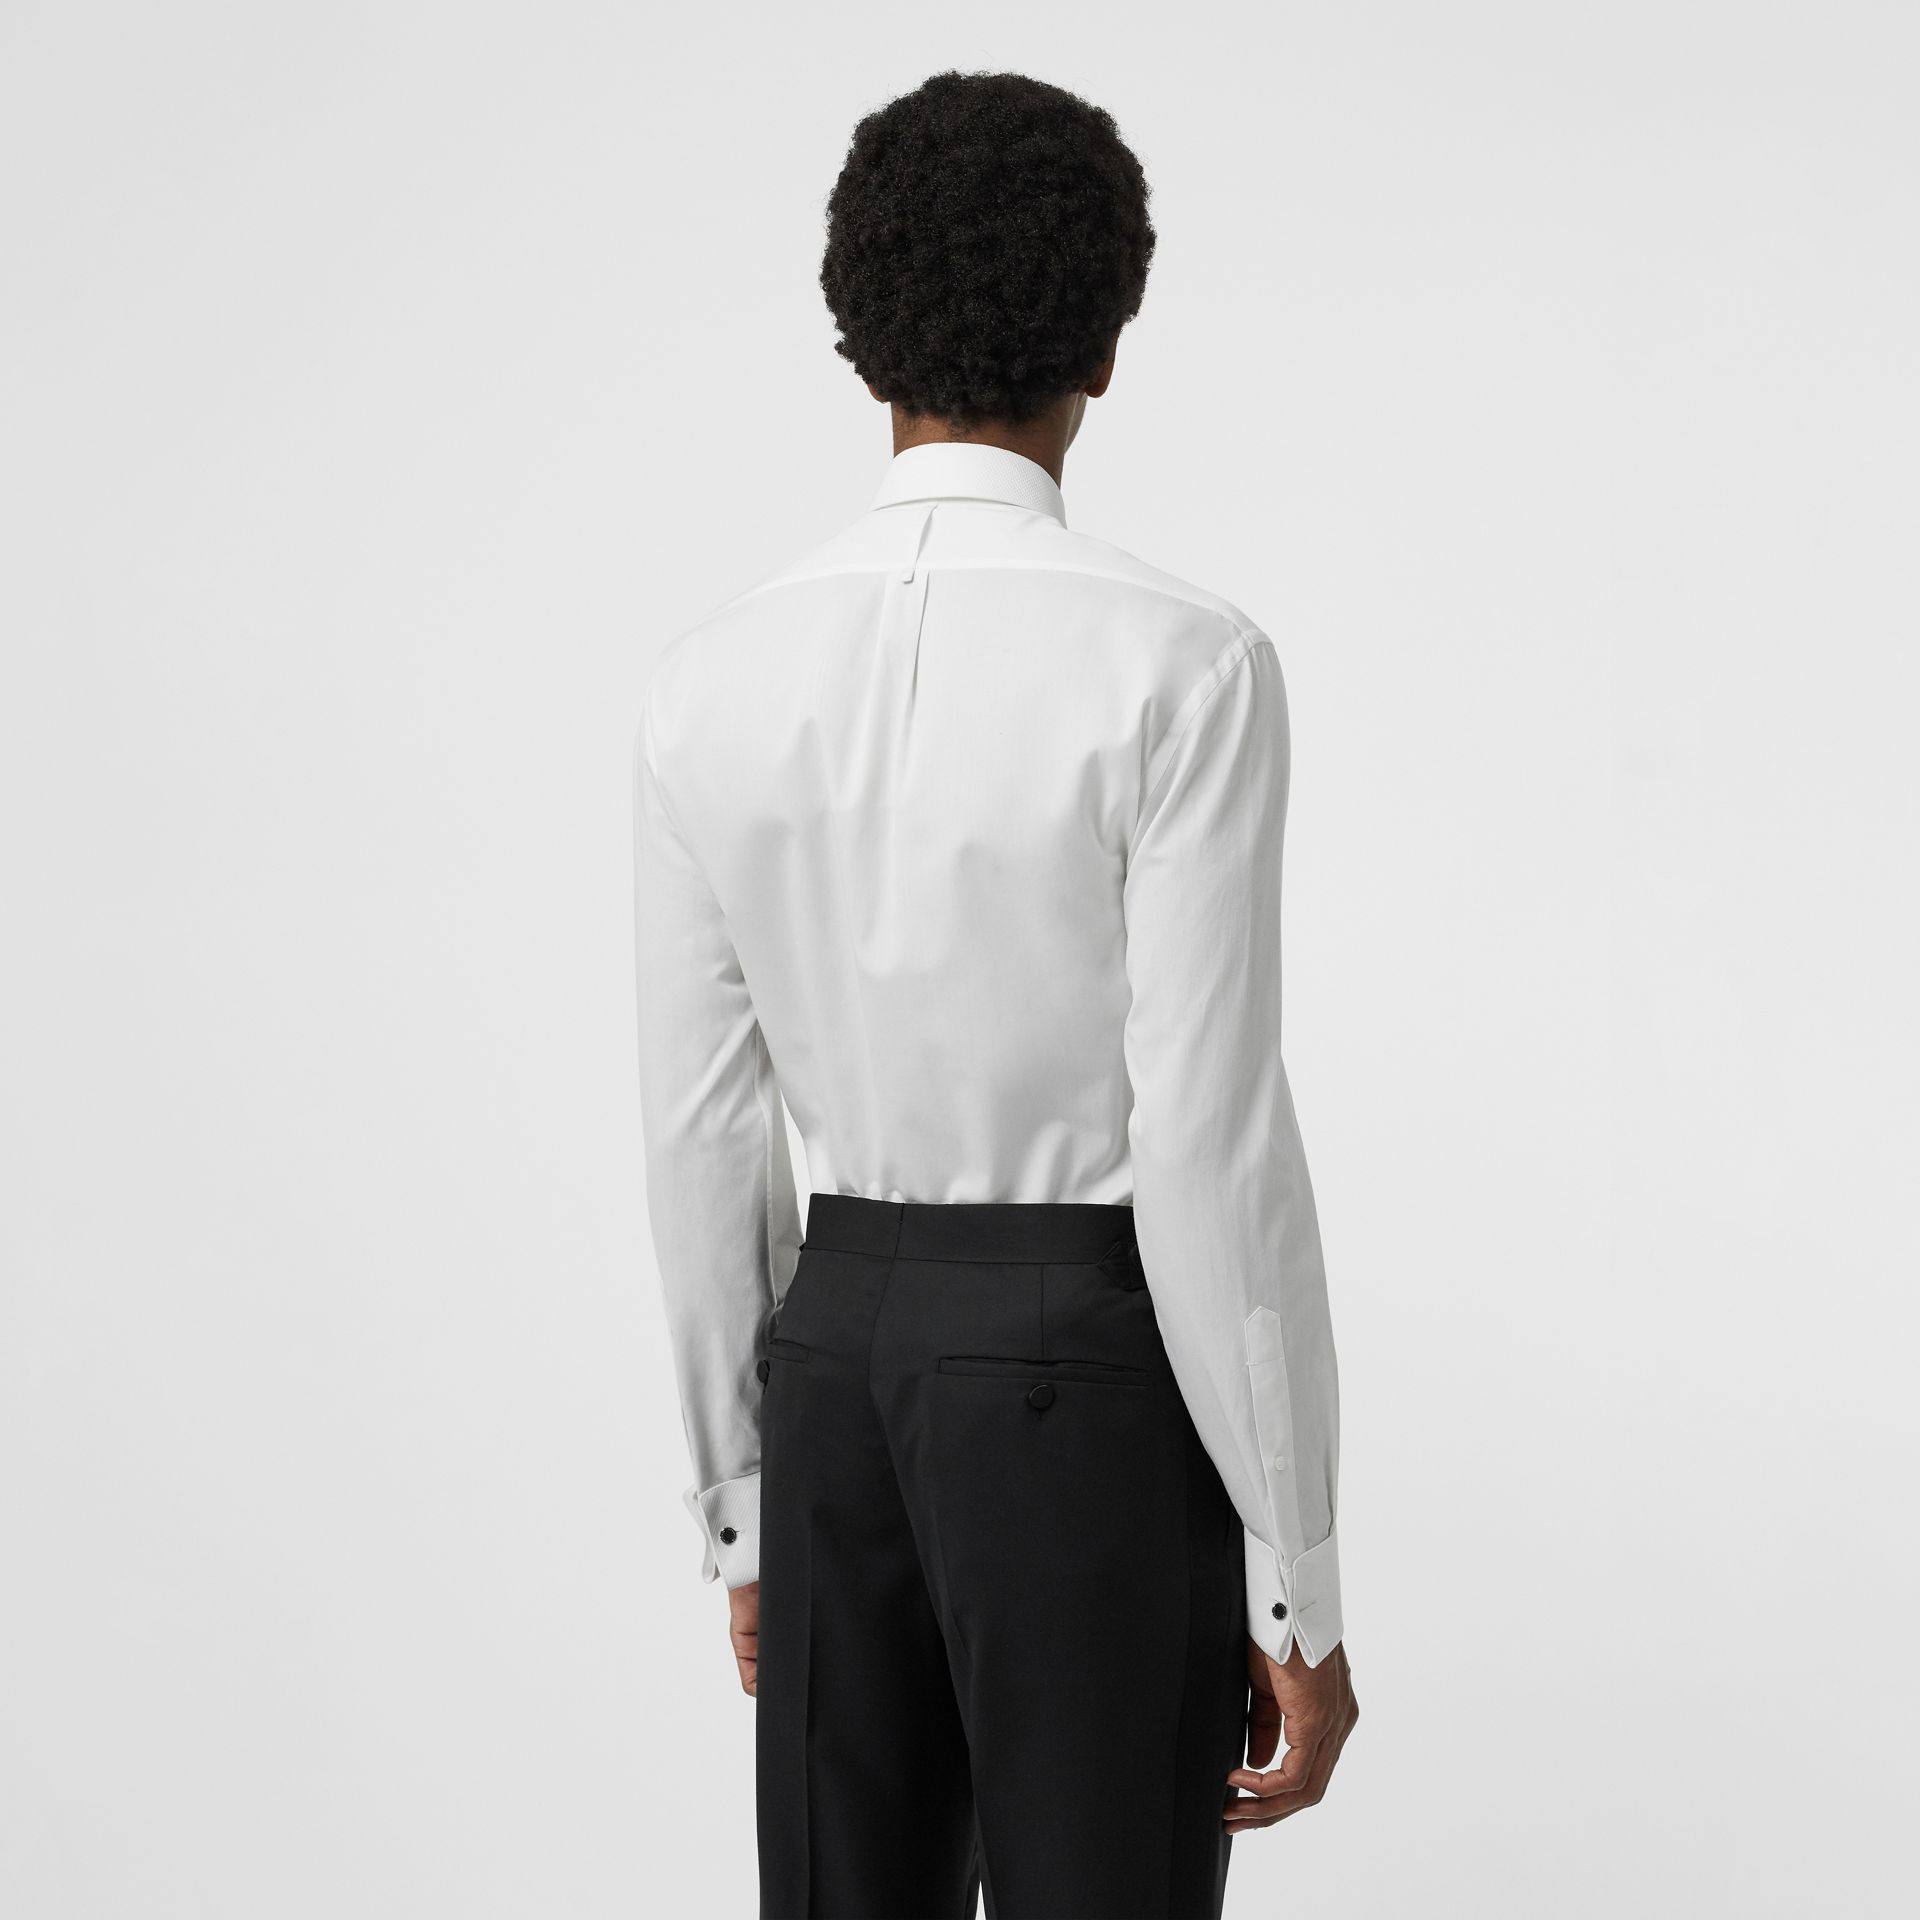 Modern Fit Panelled Bib Cotton Twill Evening Shirt in White - Men | Burberry Canada - gallery image 2